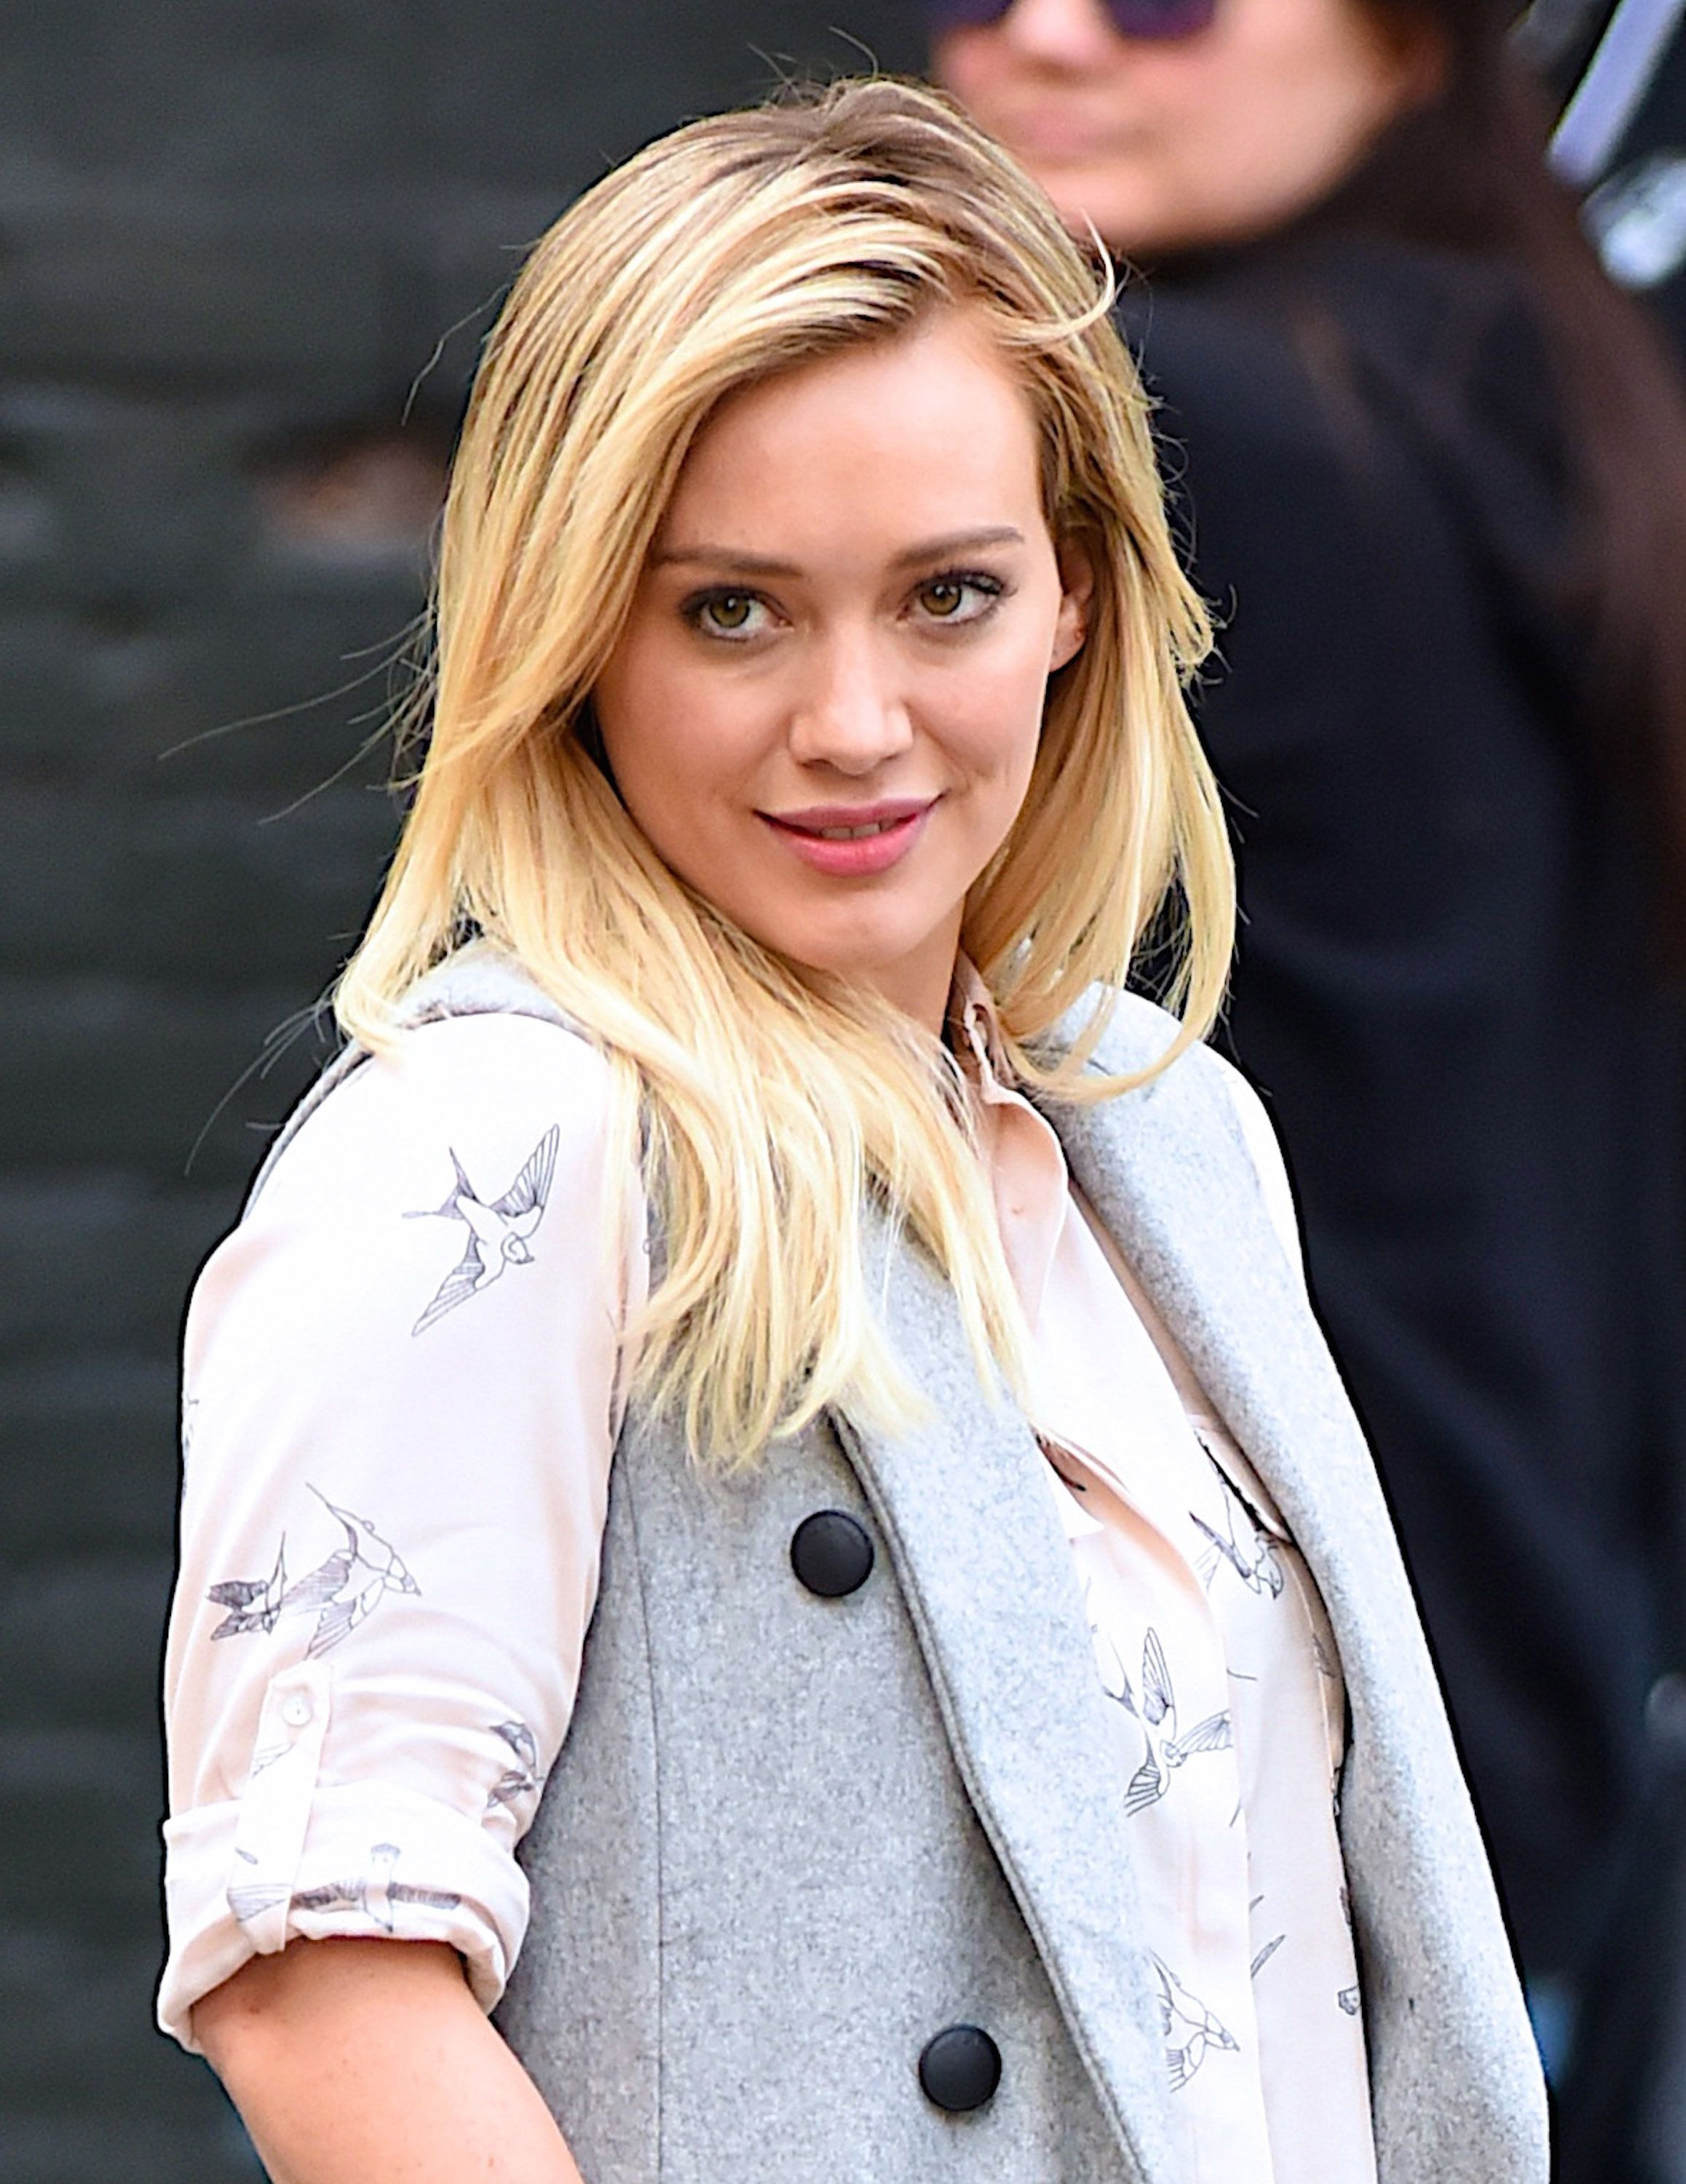 NEW YORK, NY - OCTOBER 22:  Hilary Duff films HBO tv show,'Younger' on October 22, 2015 in New York City.  (Photo by Robert Kamau/GC Images)